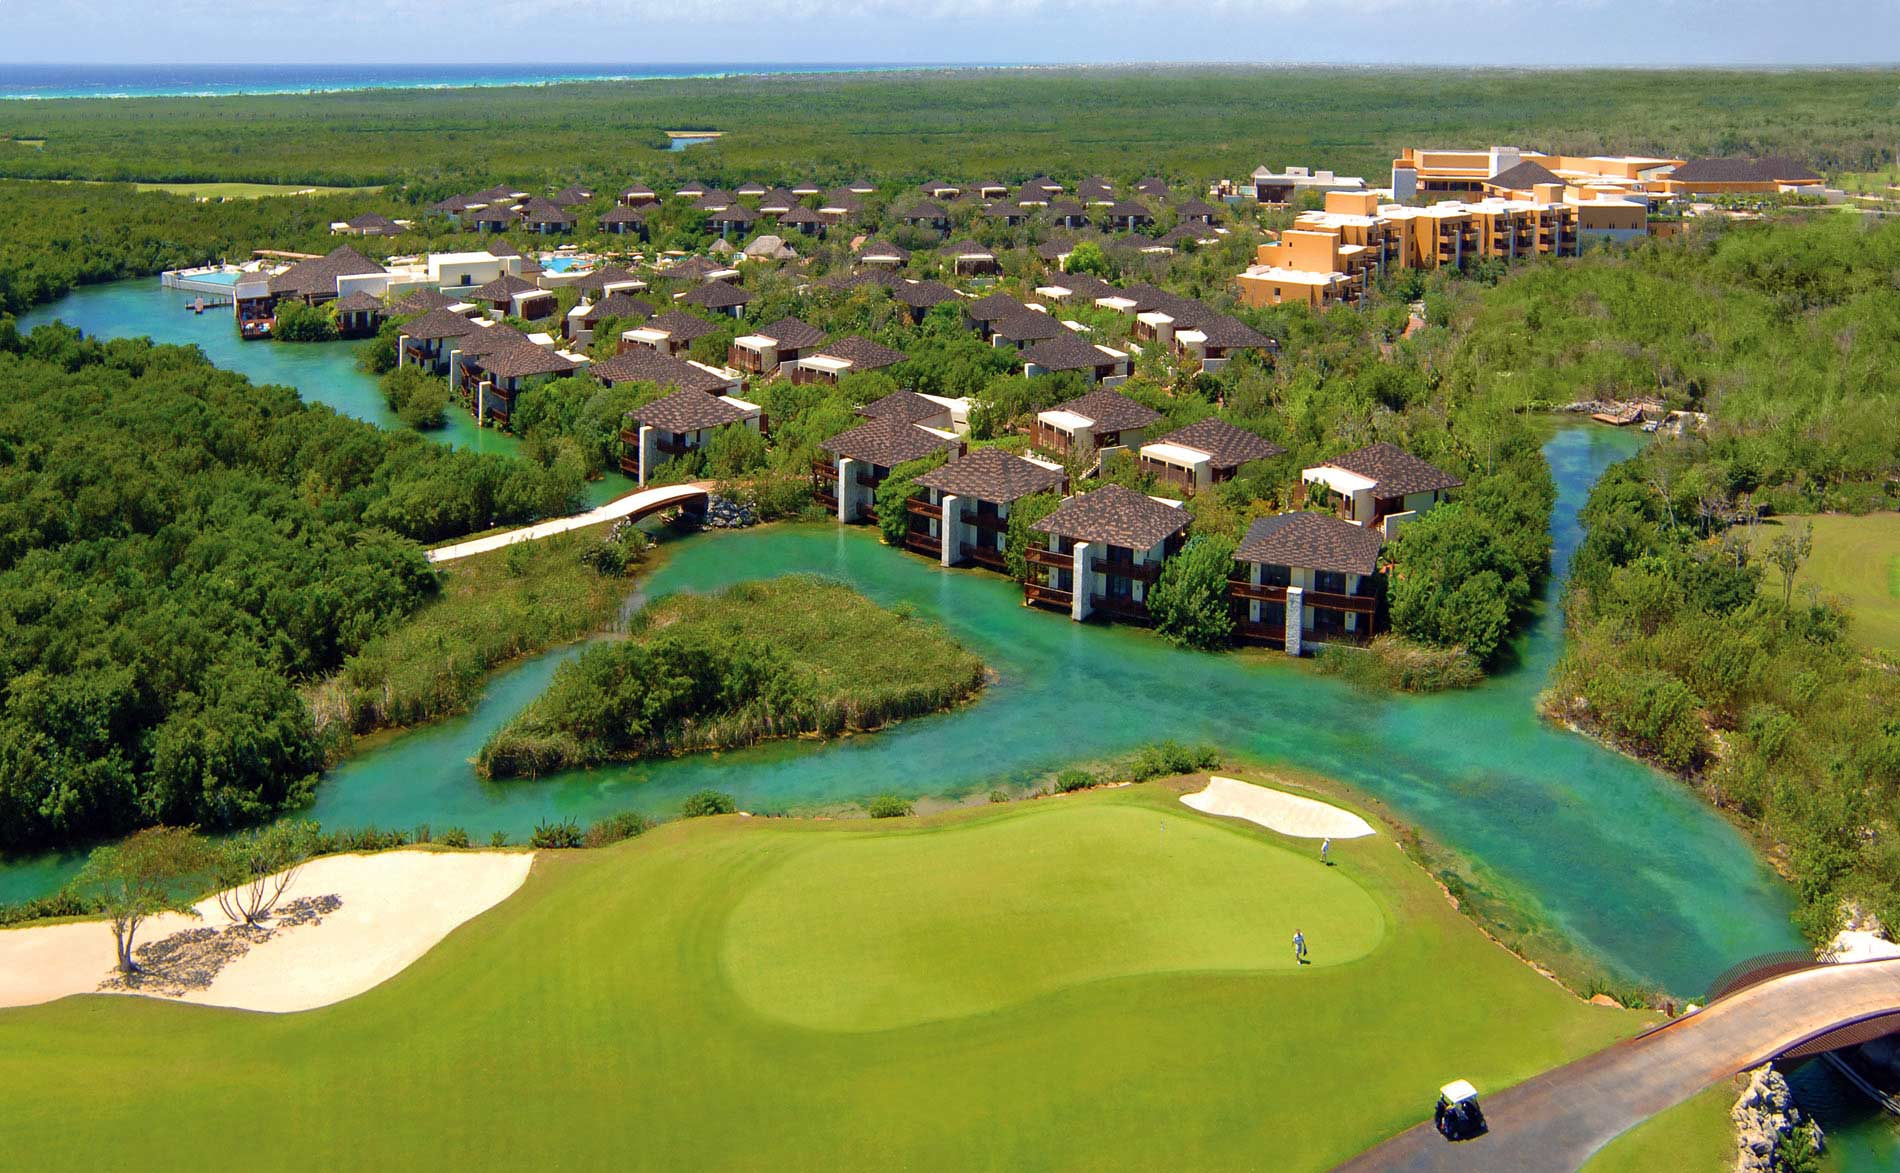 2 Day Golf School - Two Day Golf School Programs8 Hours of Instruction over 2 DaysDigital Video Swing Analysis2:1 Student to Instructor Ratio (4 student max)Jim McLean WorkbookGolf round at El CamaleónLunch daily at Mayakoba GrillThe comprehensive program is designed to accept a wide variety of golfing abilities. Our world-class professionals will evaluate each individual and develop a plan to optimize their playing abilities. The two day system allocates balanced improvement to several aspects of your golf game.8:00am-12:00pmInvestment: $1,360.00(Add $1,130 for each additional person)This school is currently customized to fit your schedule at any time during your stay in the Riviera Maya.